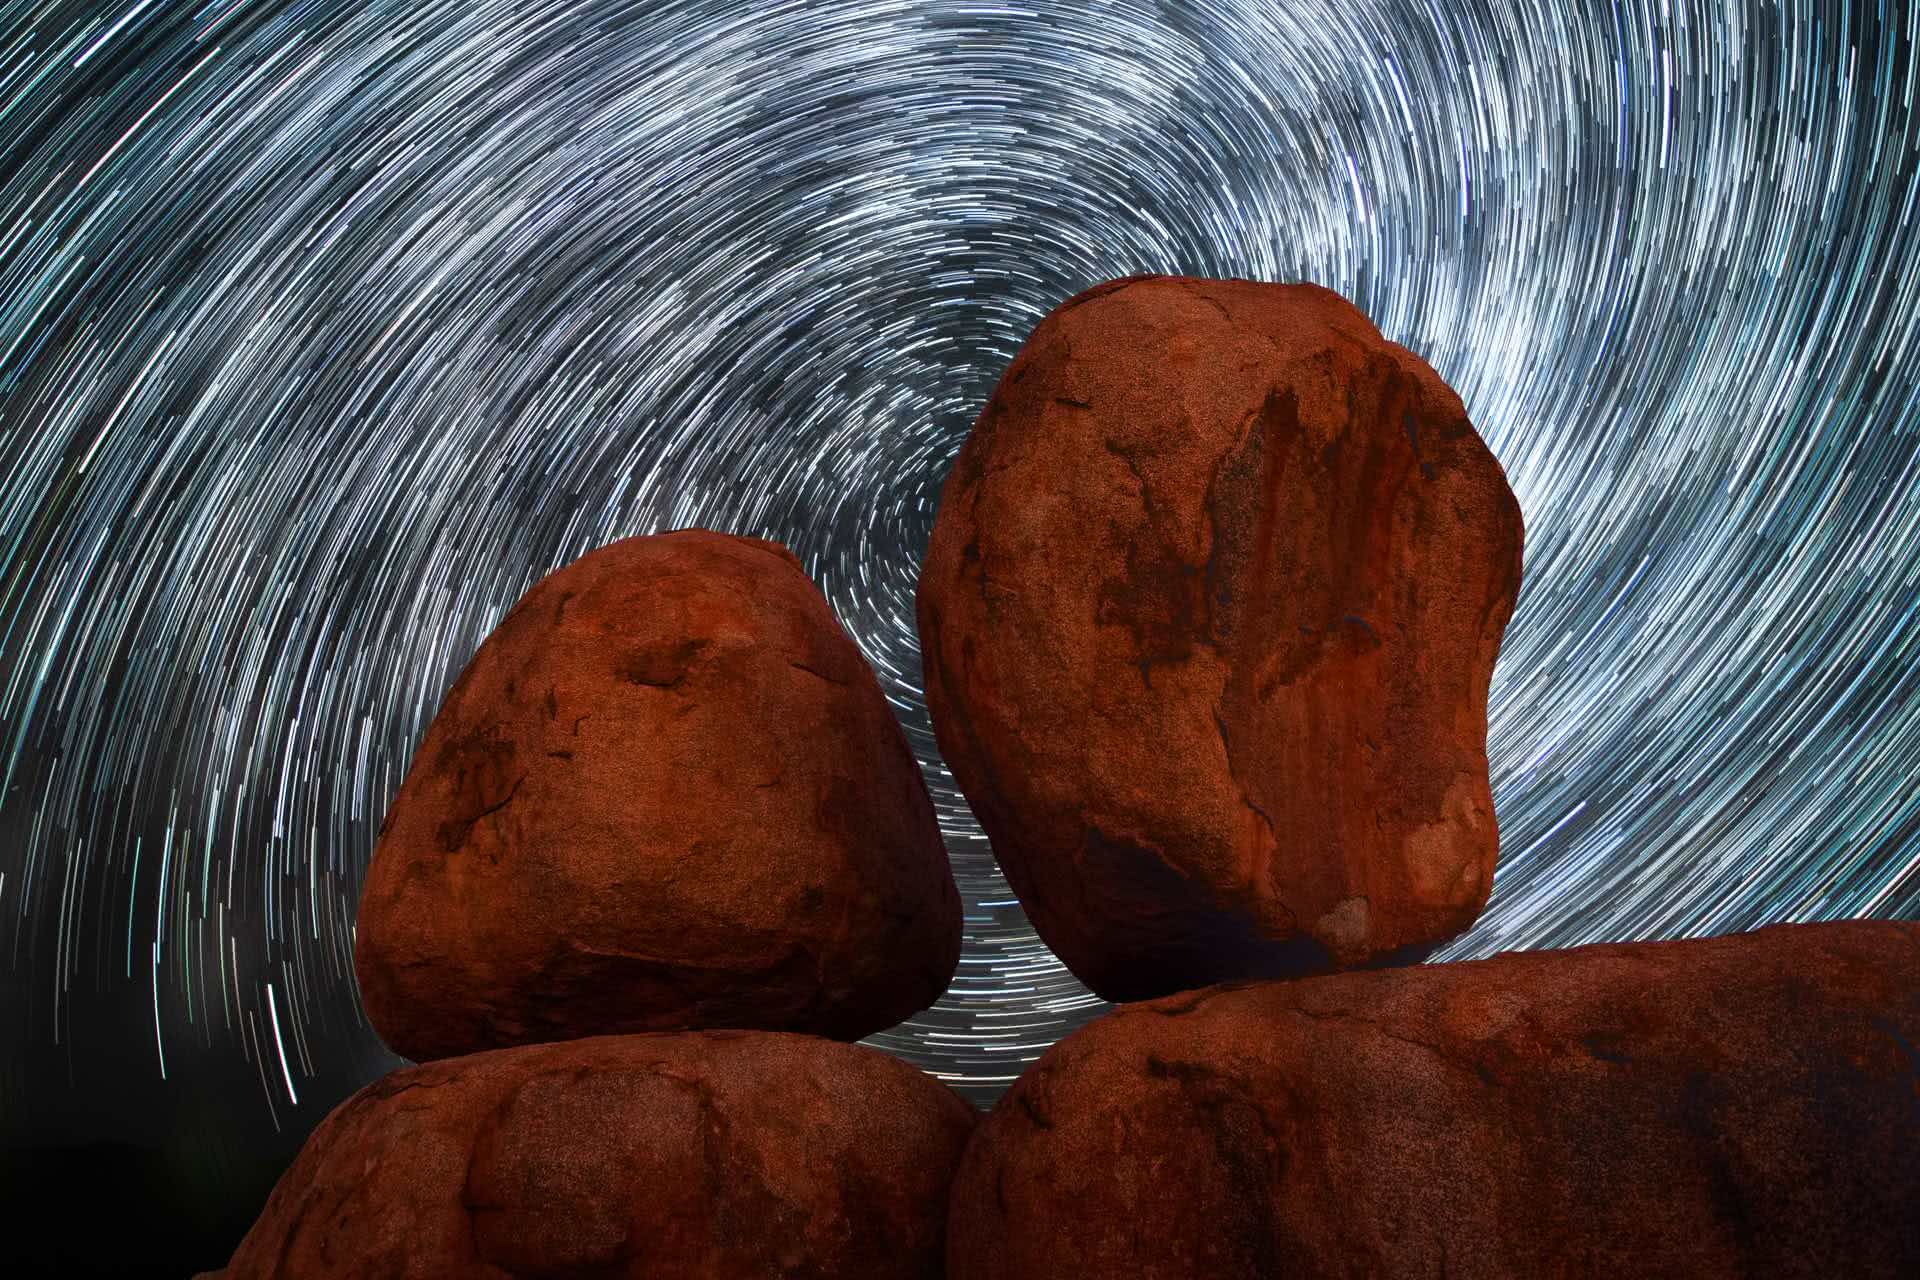 Roll the Devil's Marbles at Karlu Karlu (NT), Conor Moore, stars, astrophotography, rocks, boulders, sky